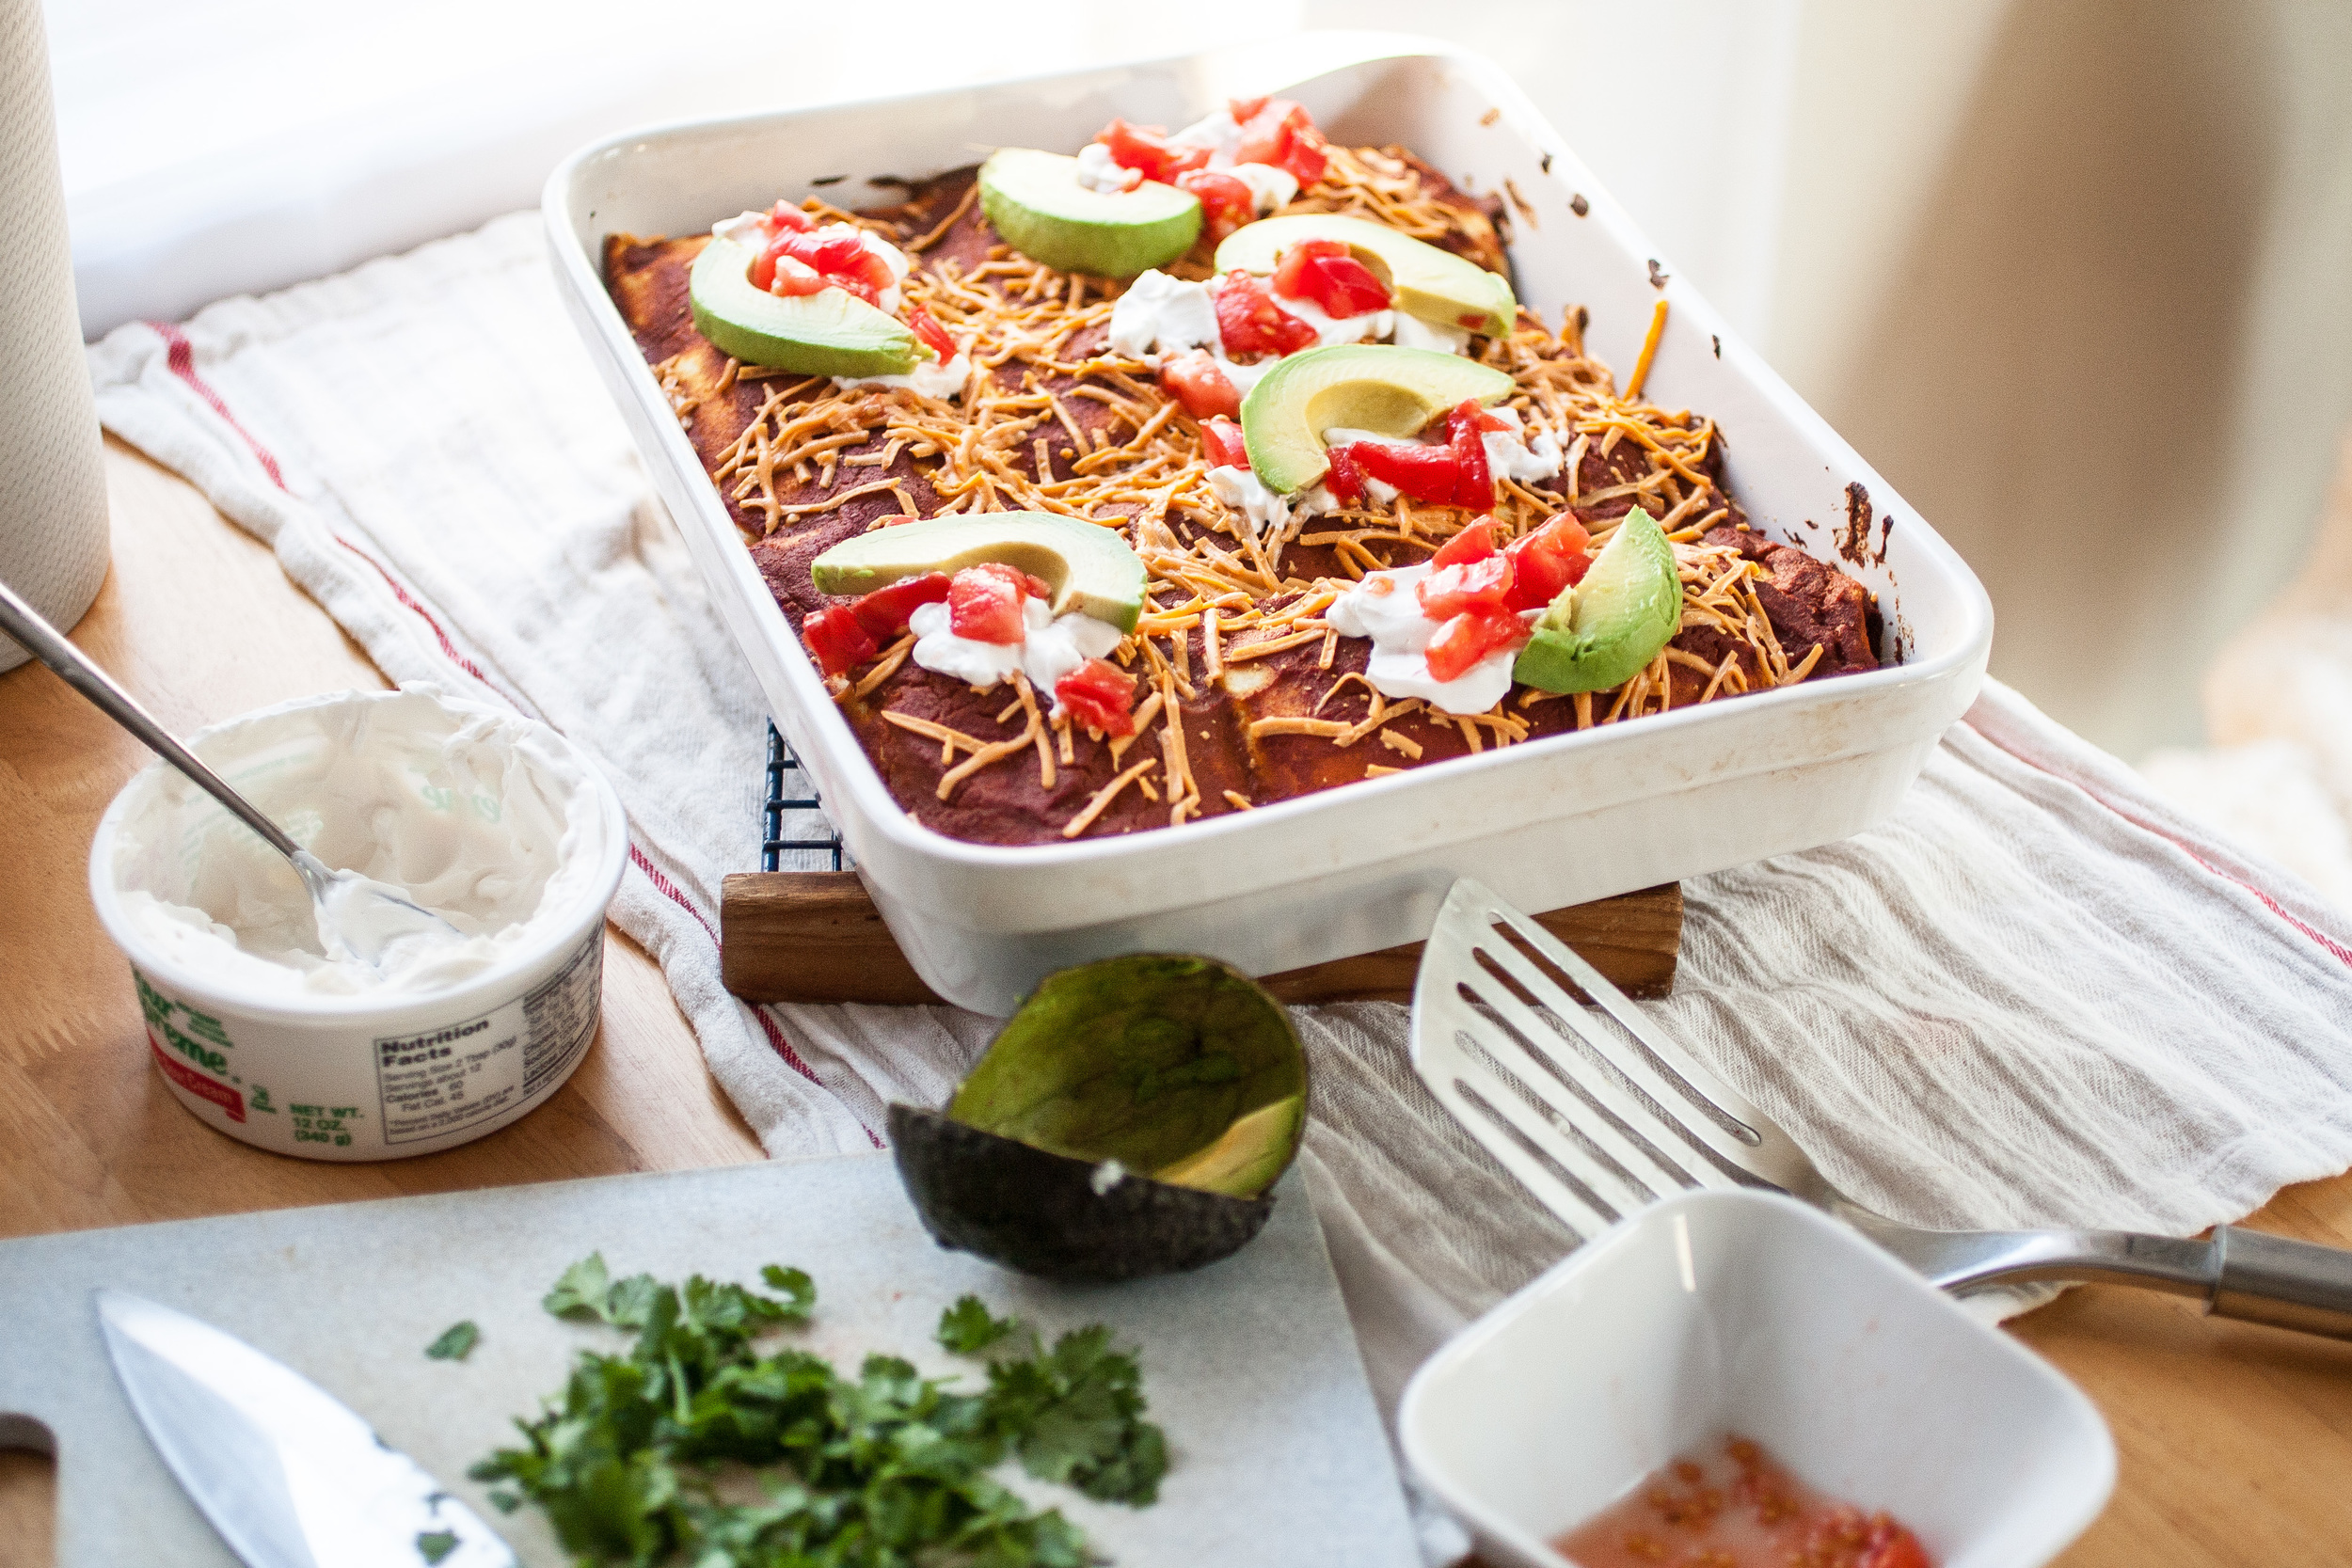 Produce On Parade - Black Bean, Corn & Red Rice Enchiladas - These are vegan, cheesy enchiladas made with a from scratch enchilada sauce. They're easy and full of good for you vegetables!